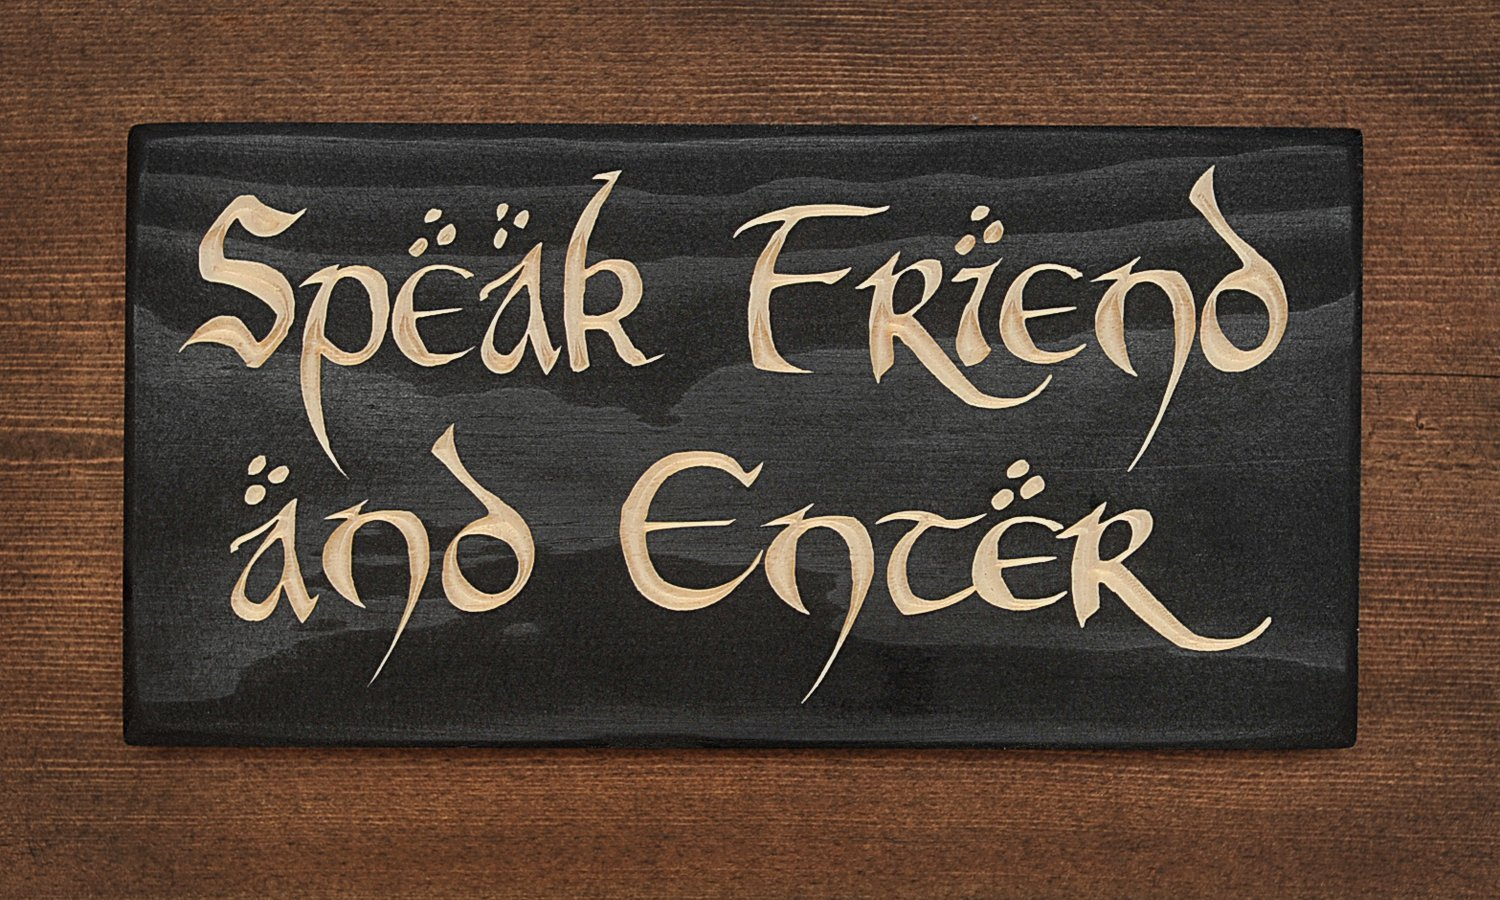 27, 9x 14cm Speak Friend and enter Sign/Plaque. Great gift for Lord of the Rings and the Hobbit fans. Legno massello inciso. Distraction